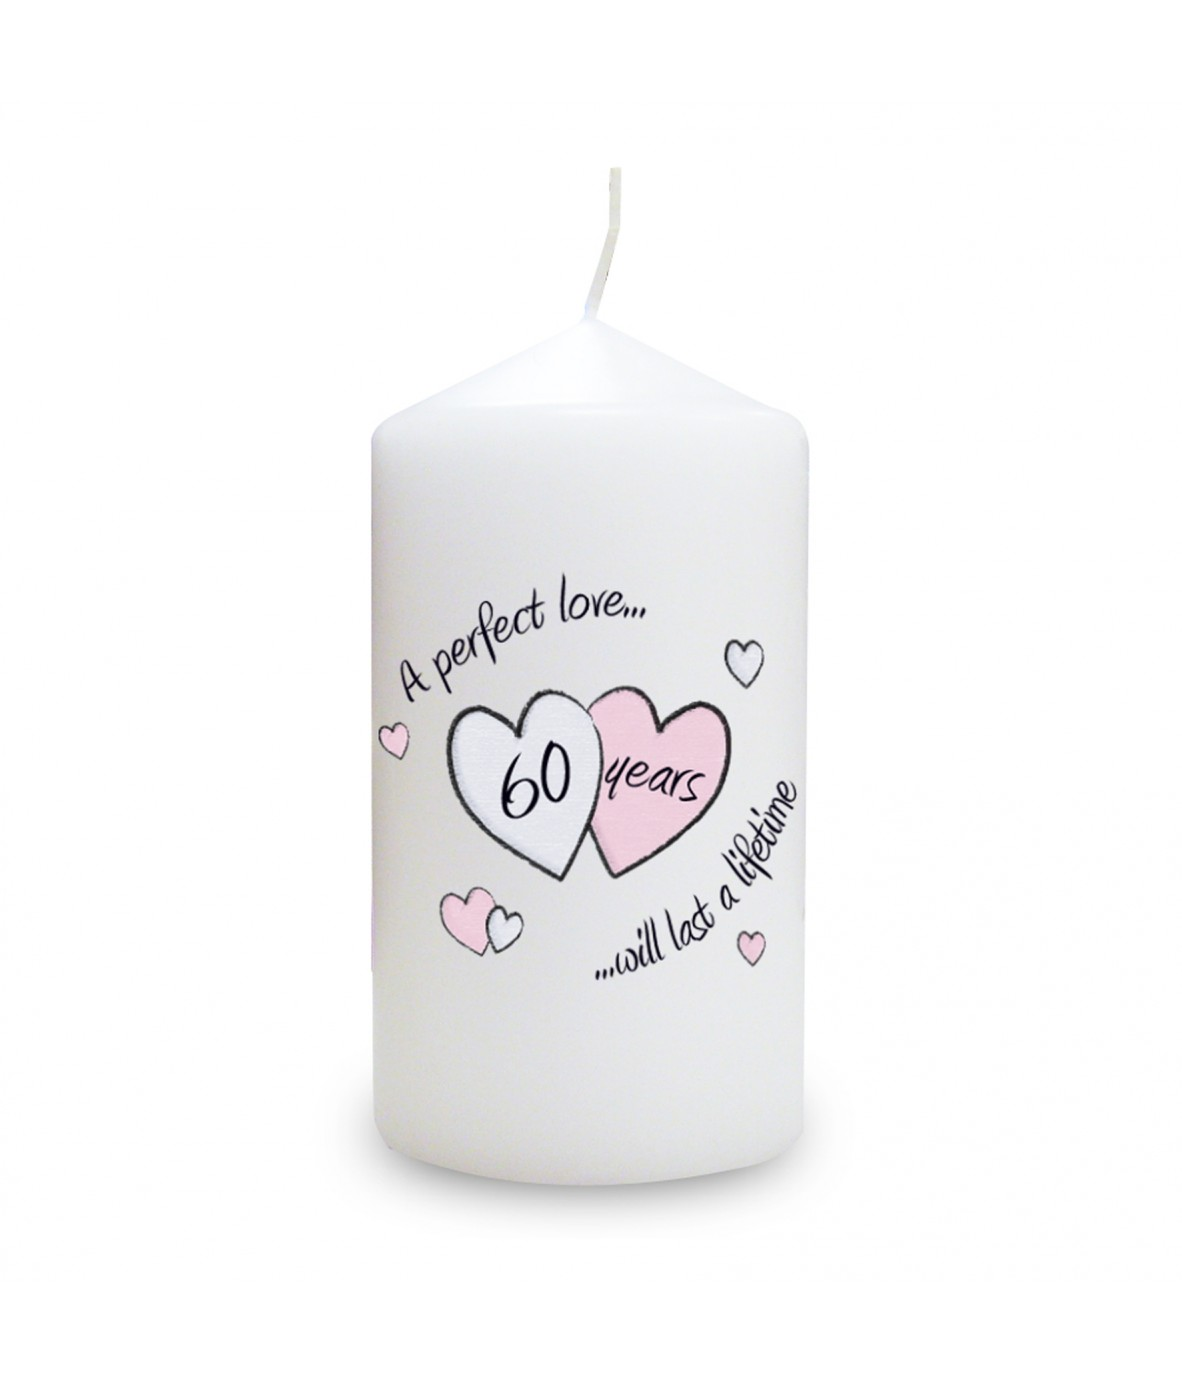 ... keepsake candle which makes a perfect gift for a diamond anniversary.